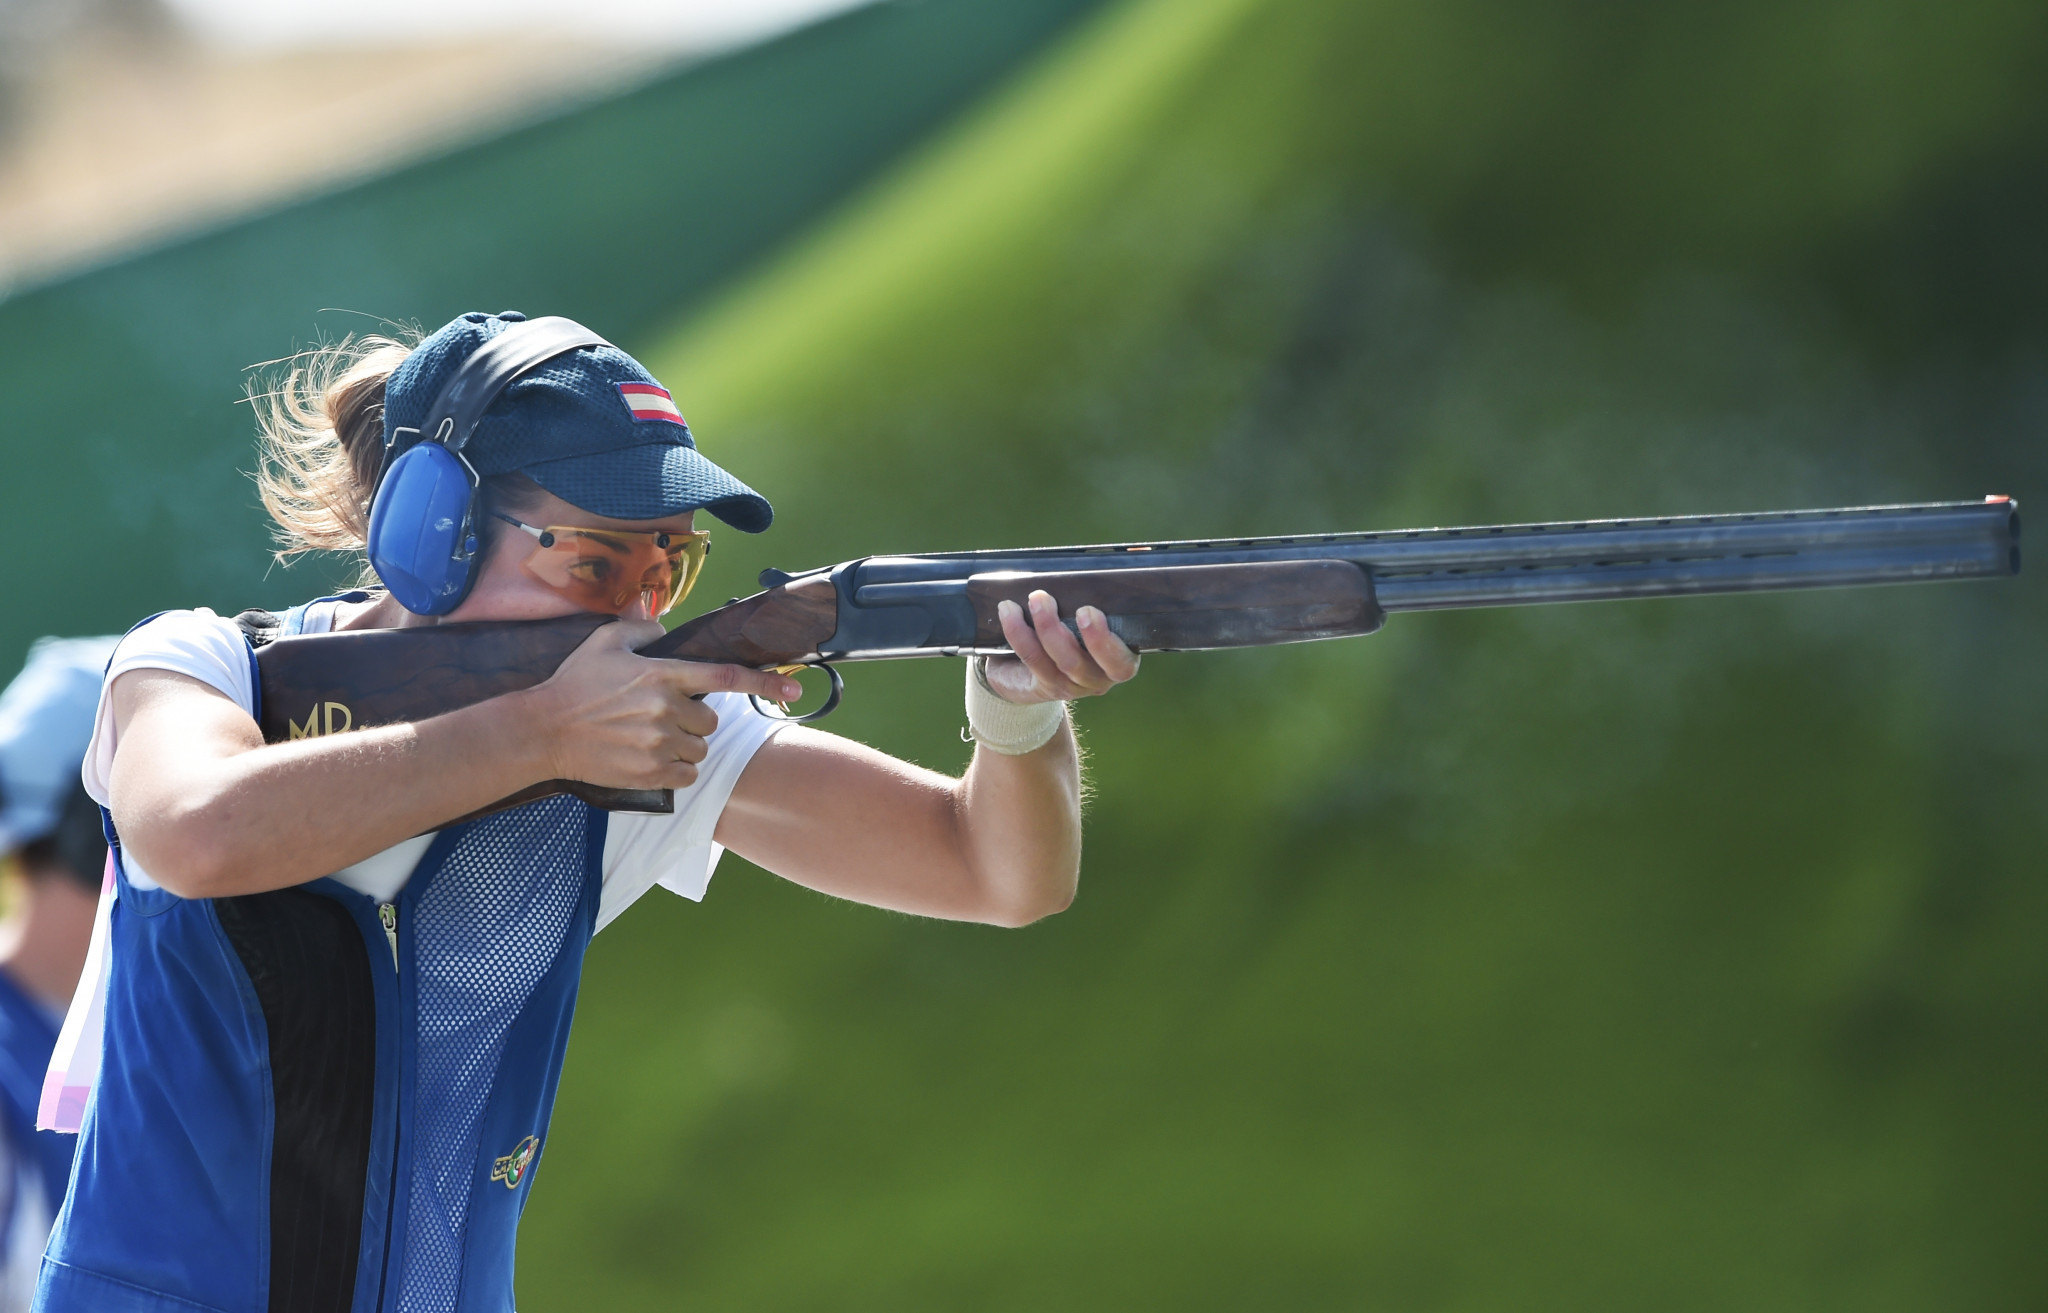 Spaniards win mixed team trap title at European Championship Shotgun